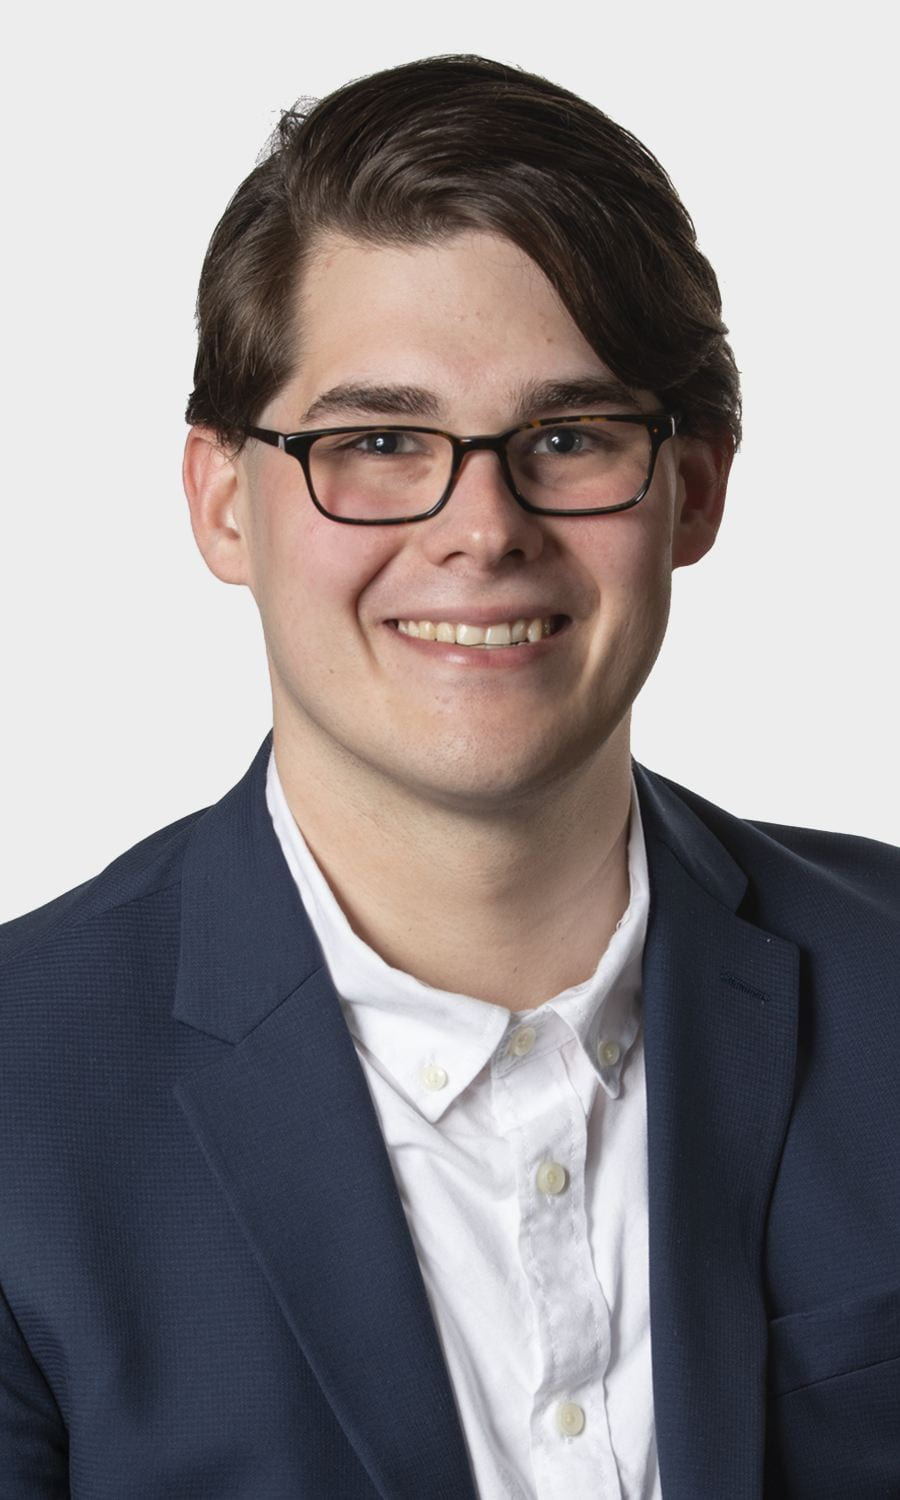 Kyle Casteel smiles, wearing a white button-up shirt, blue blazer and dark glasses.